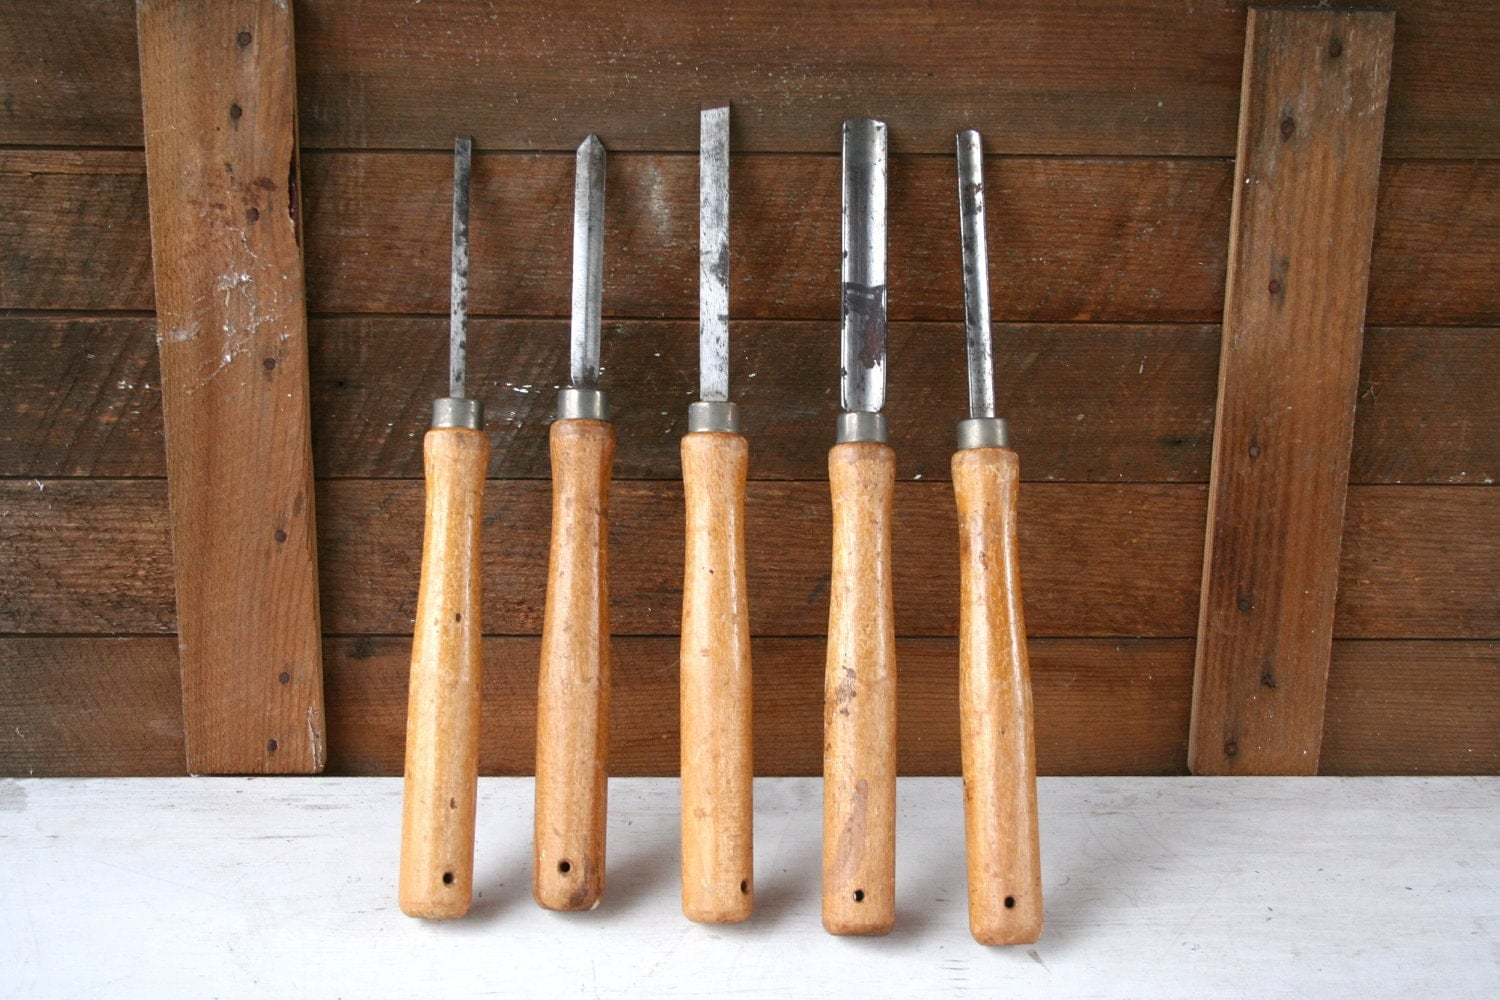 SALE - Five LARGE Antique Wood Turning Tools - With Wood Handles - Awesome Collection - Great Condition - LoveliesShop